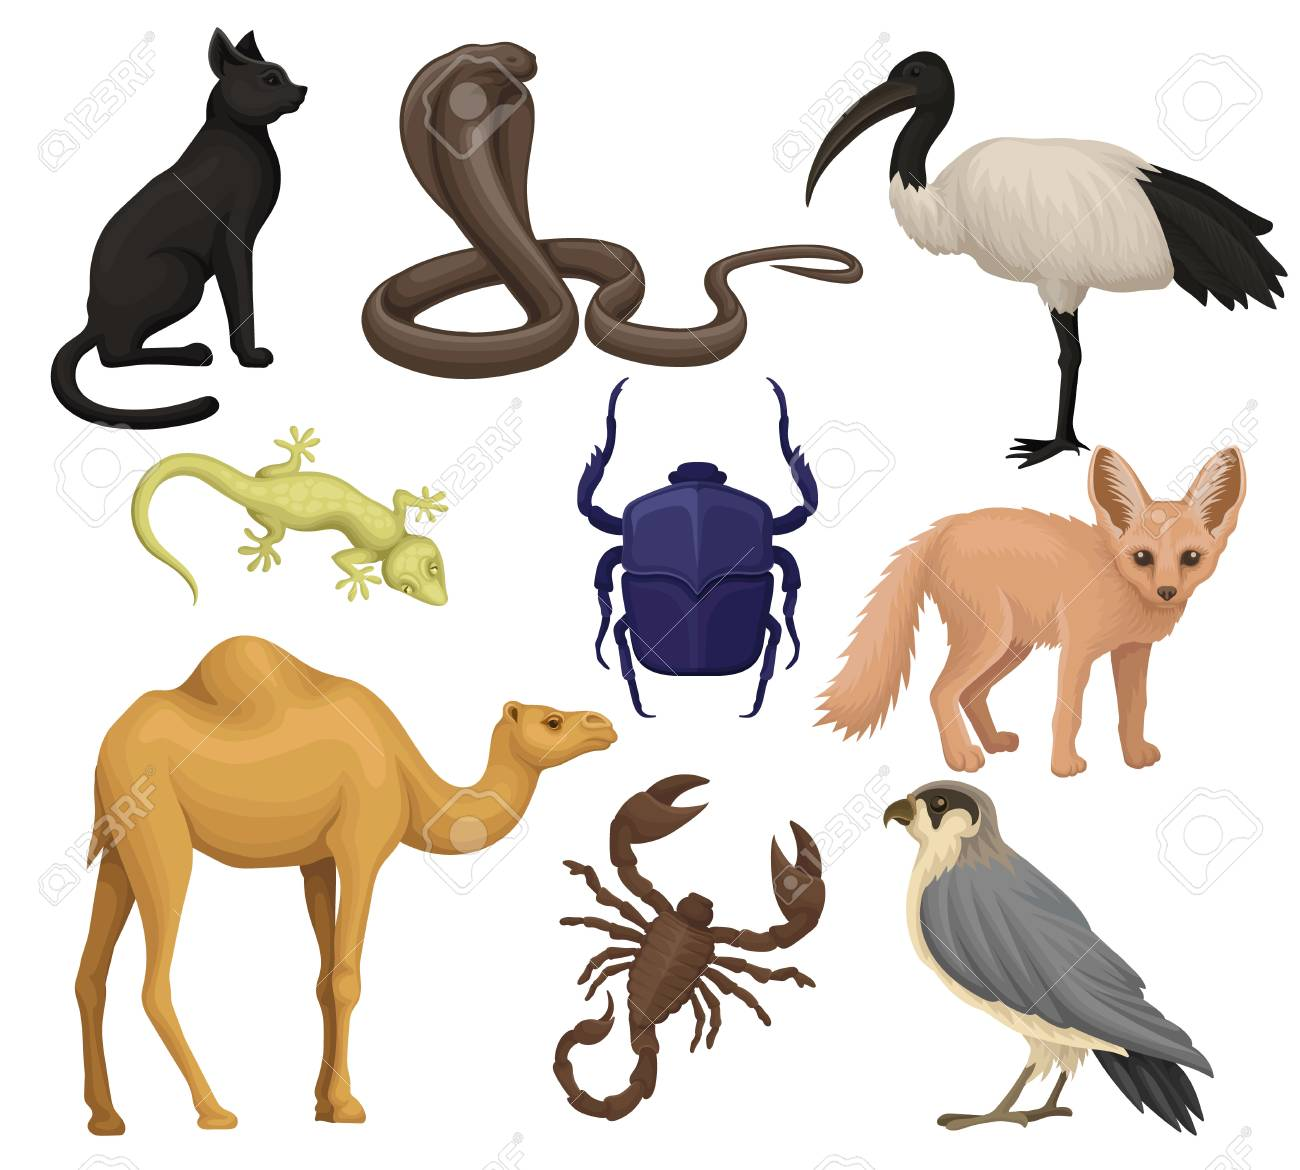 Detailed flat vector set of various Egyptian animals, birds and insects. Ibis, fennec fox, scarab beetle, small-spotted lizard. African wildlife - 101963602